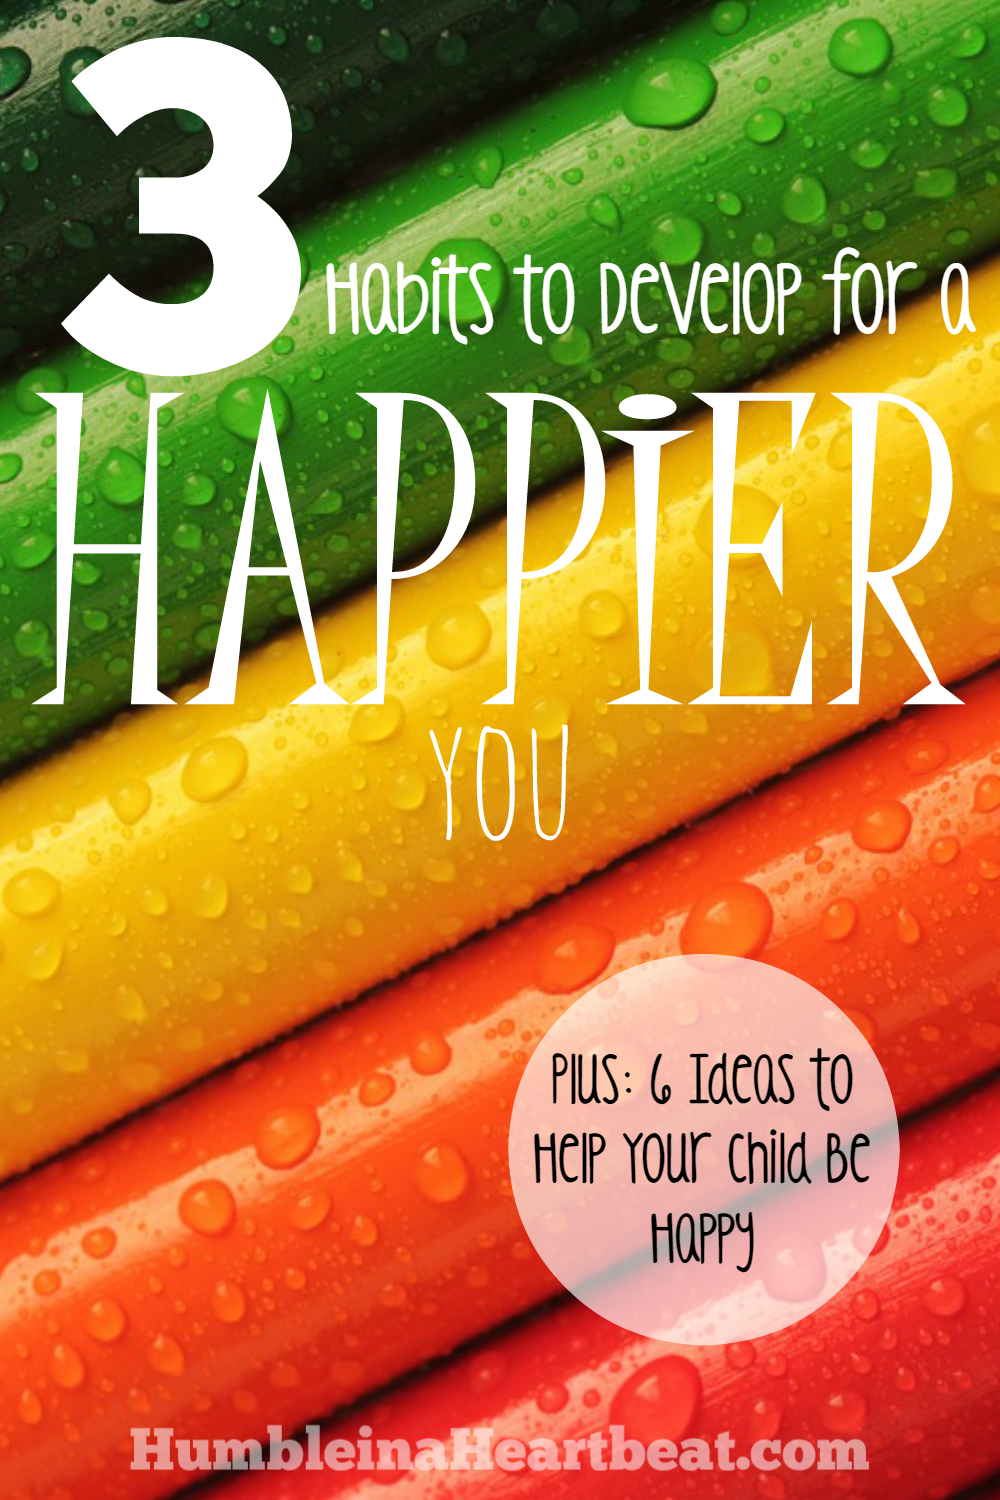 A happy child turns into a happy adult, but if you didn't learn happiness habits as a child, you probably aren't as happy as you could be. Here are 3 habits to help you start your journey to become a happier person.